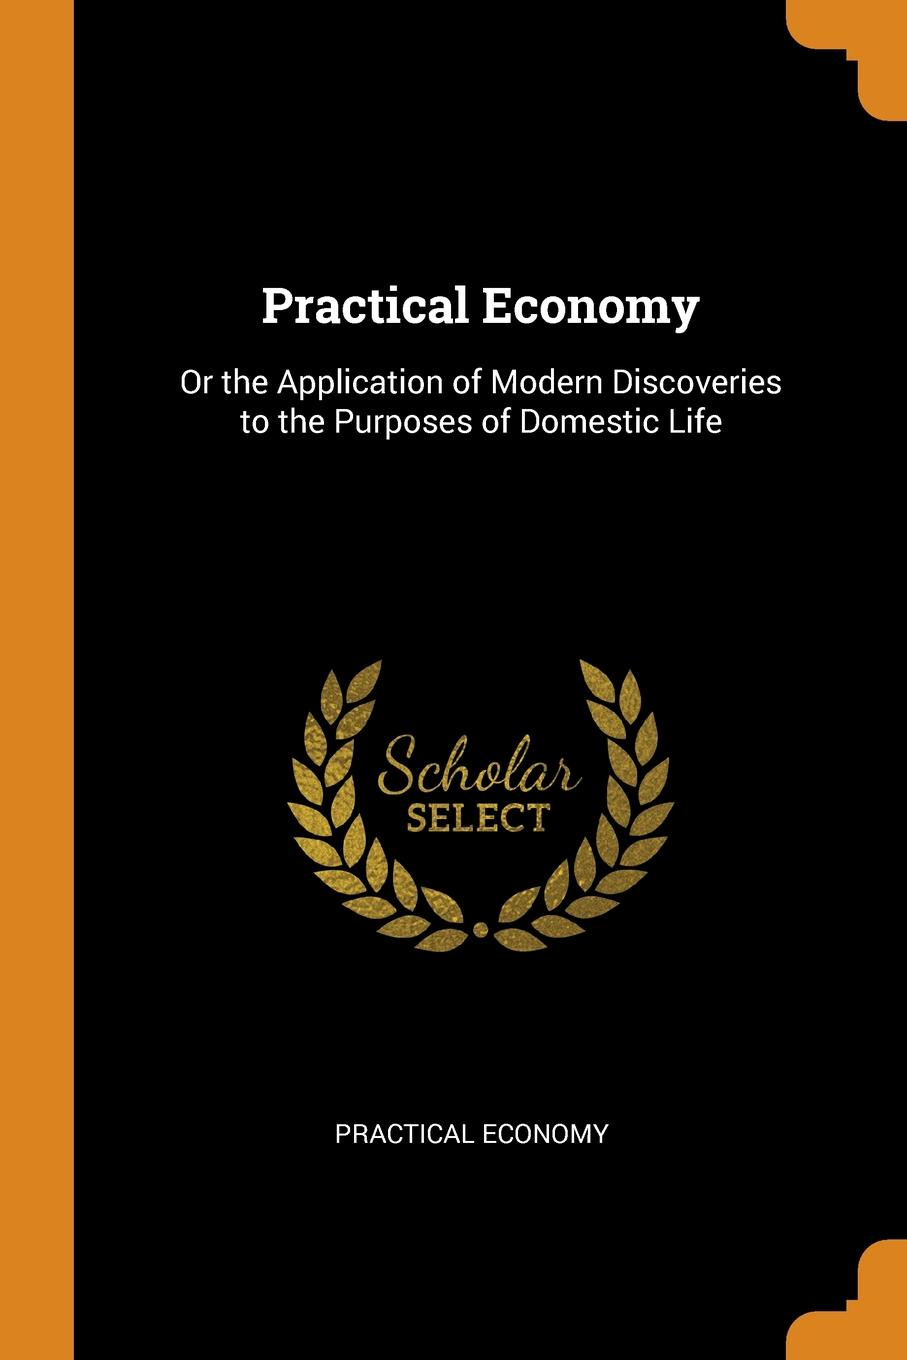 Practical Economy. Practical Economy. Or the Application of Modern Discoveries to the Purposes of Domestic Life